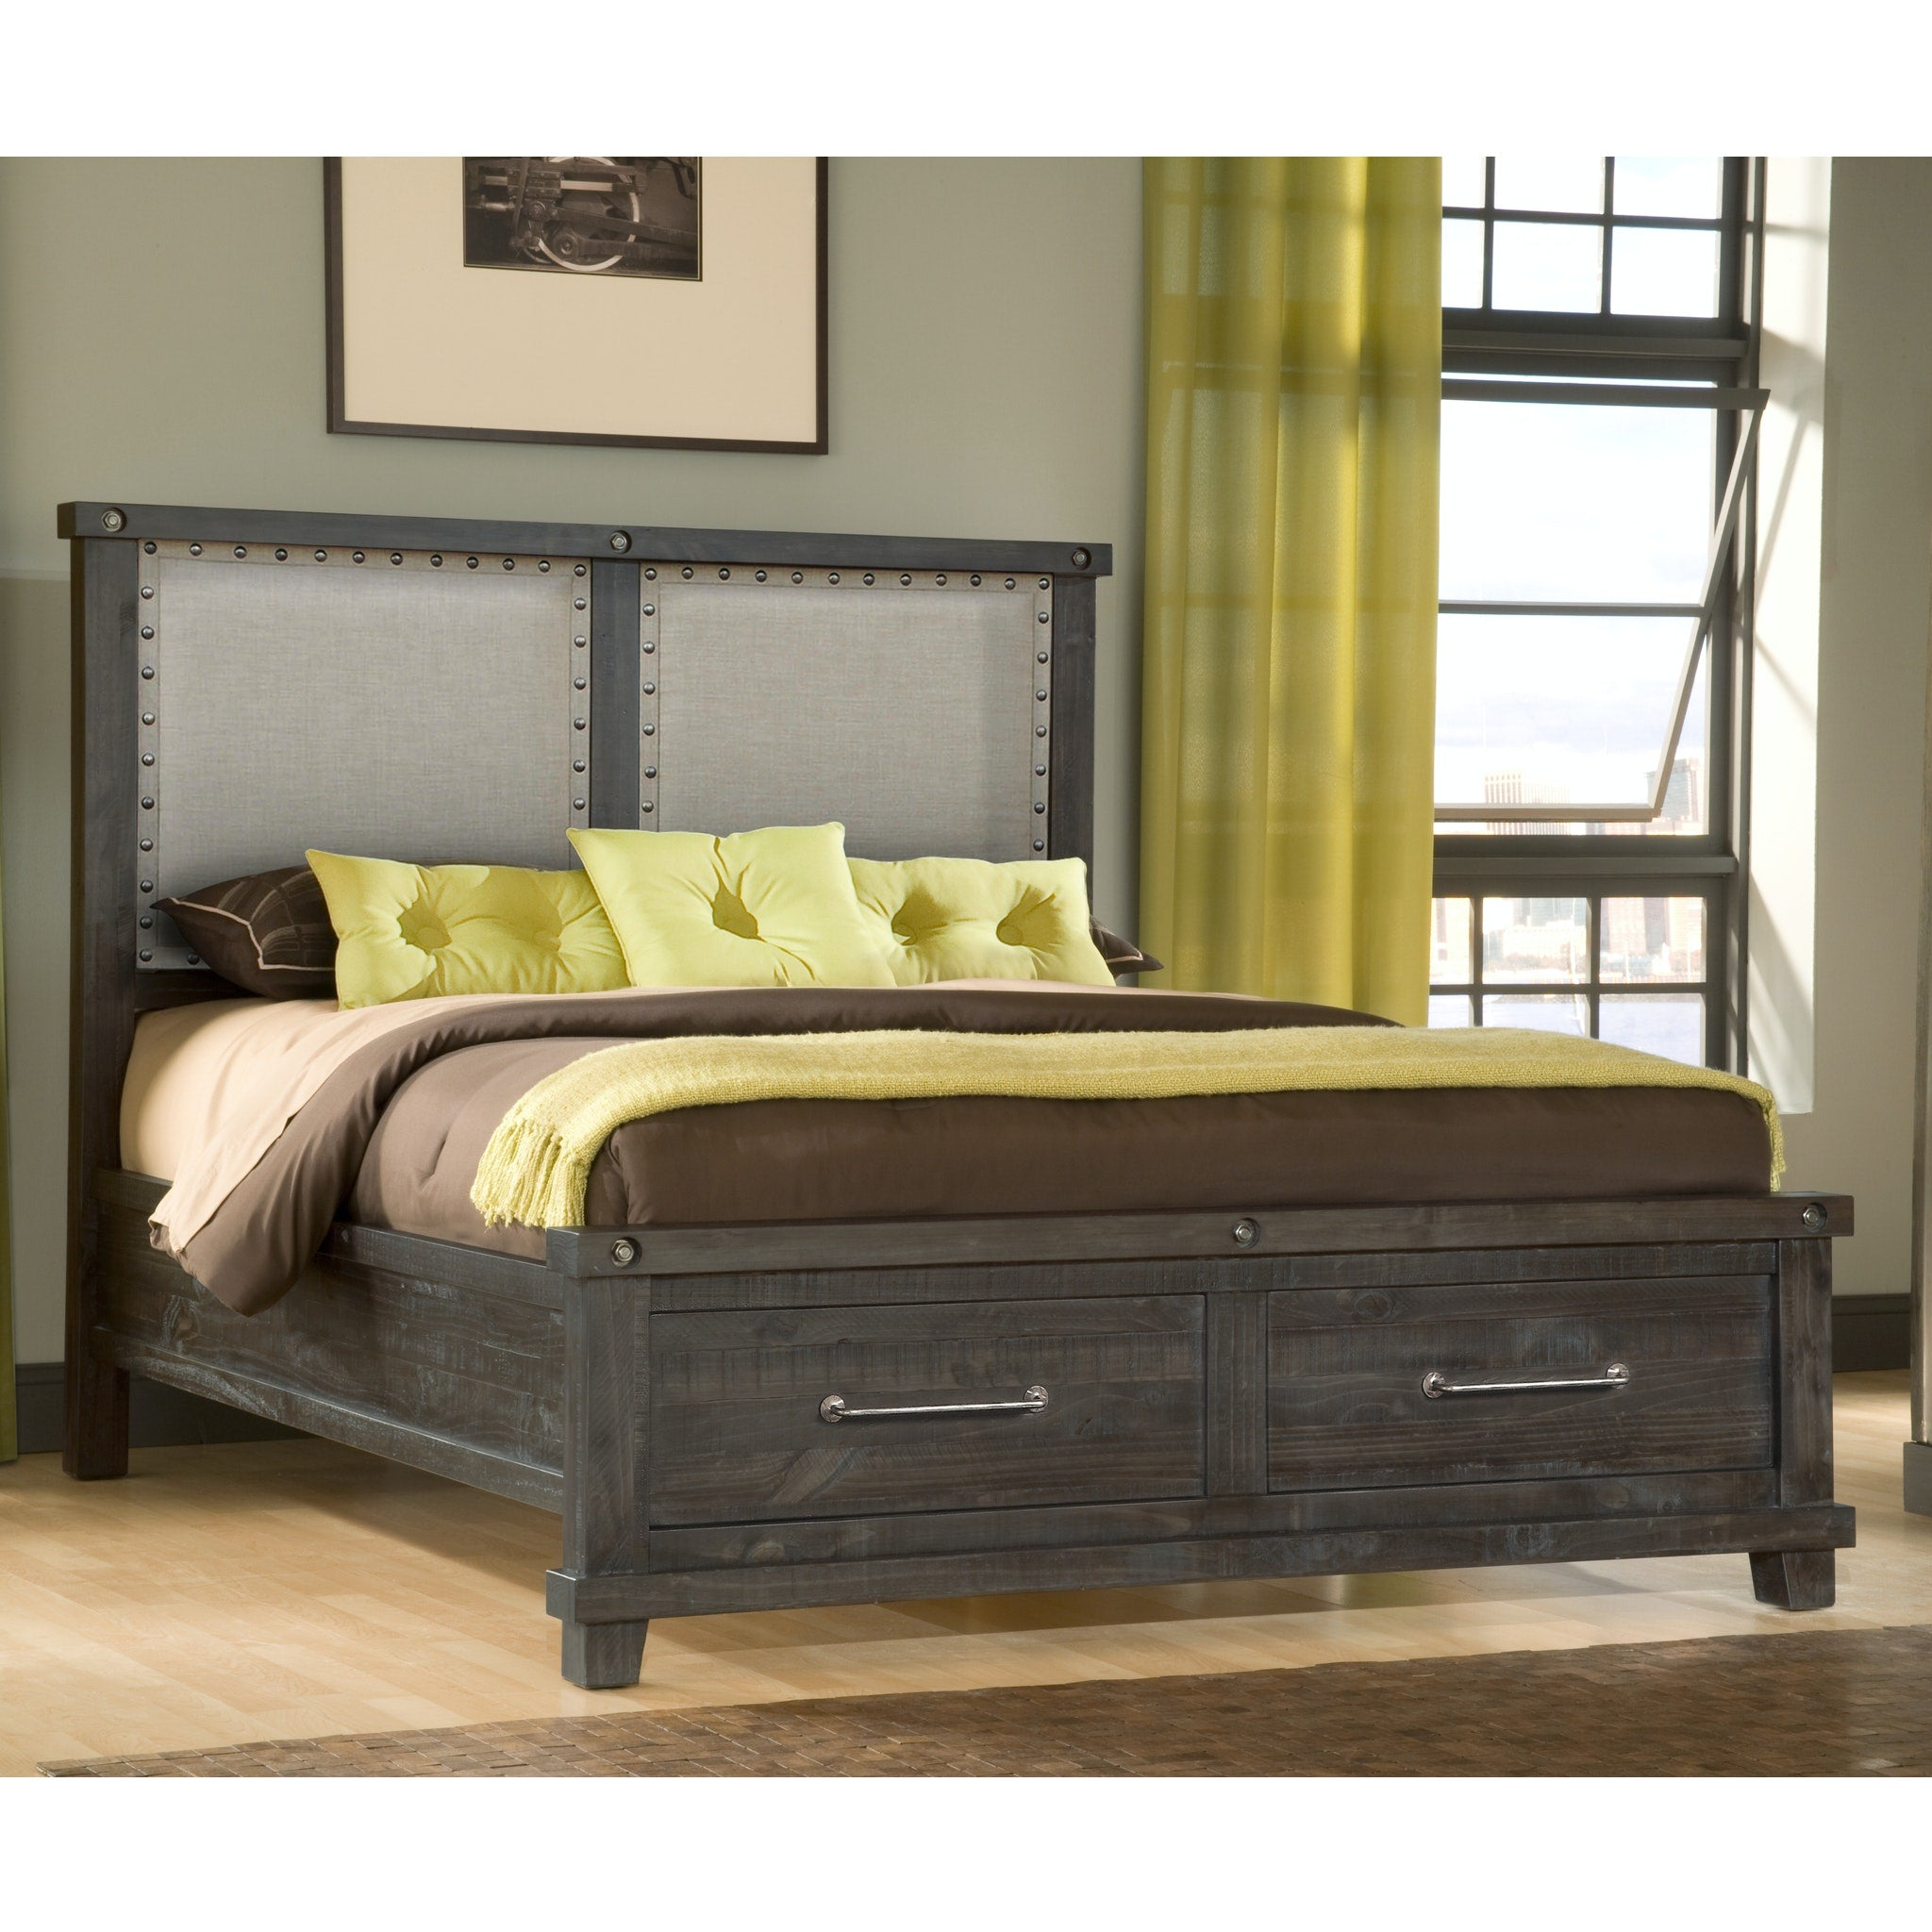 Yosemite California King-size Upholstered Footboard Storage Bed in Cafe